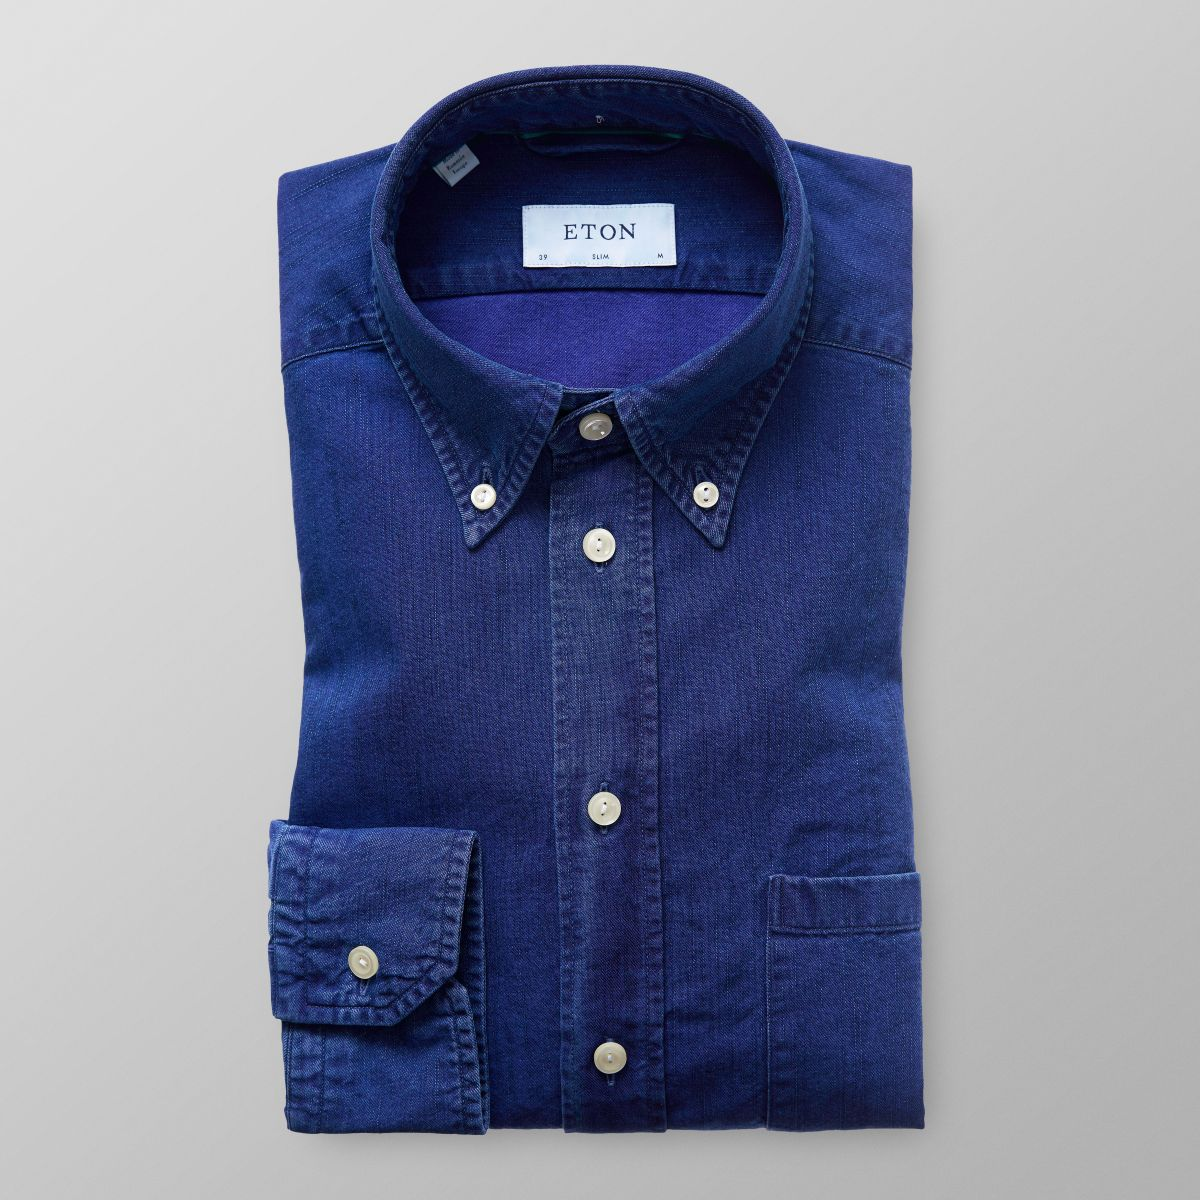 Slim fit Denim Button Down Shirt Eton Clearance With Credit Card Visa Payment For Sale Manchester Great Sale vkzRsYX1A